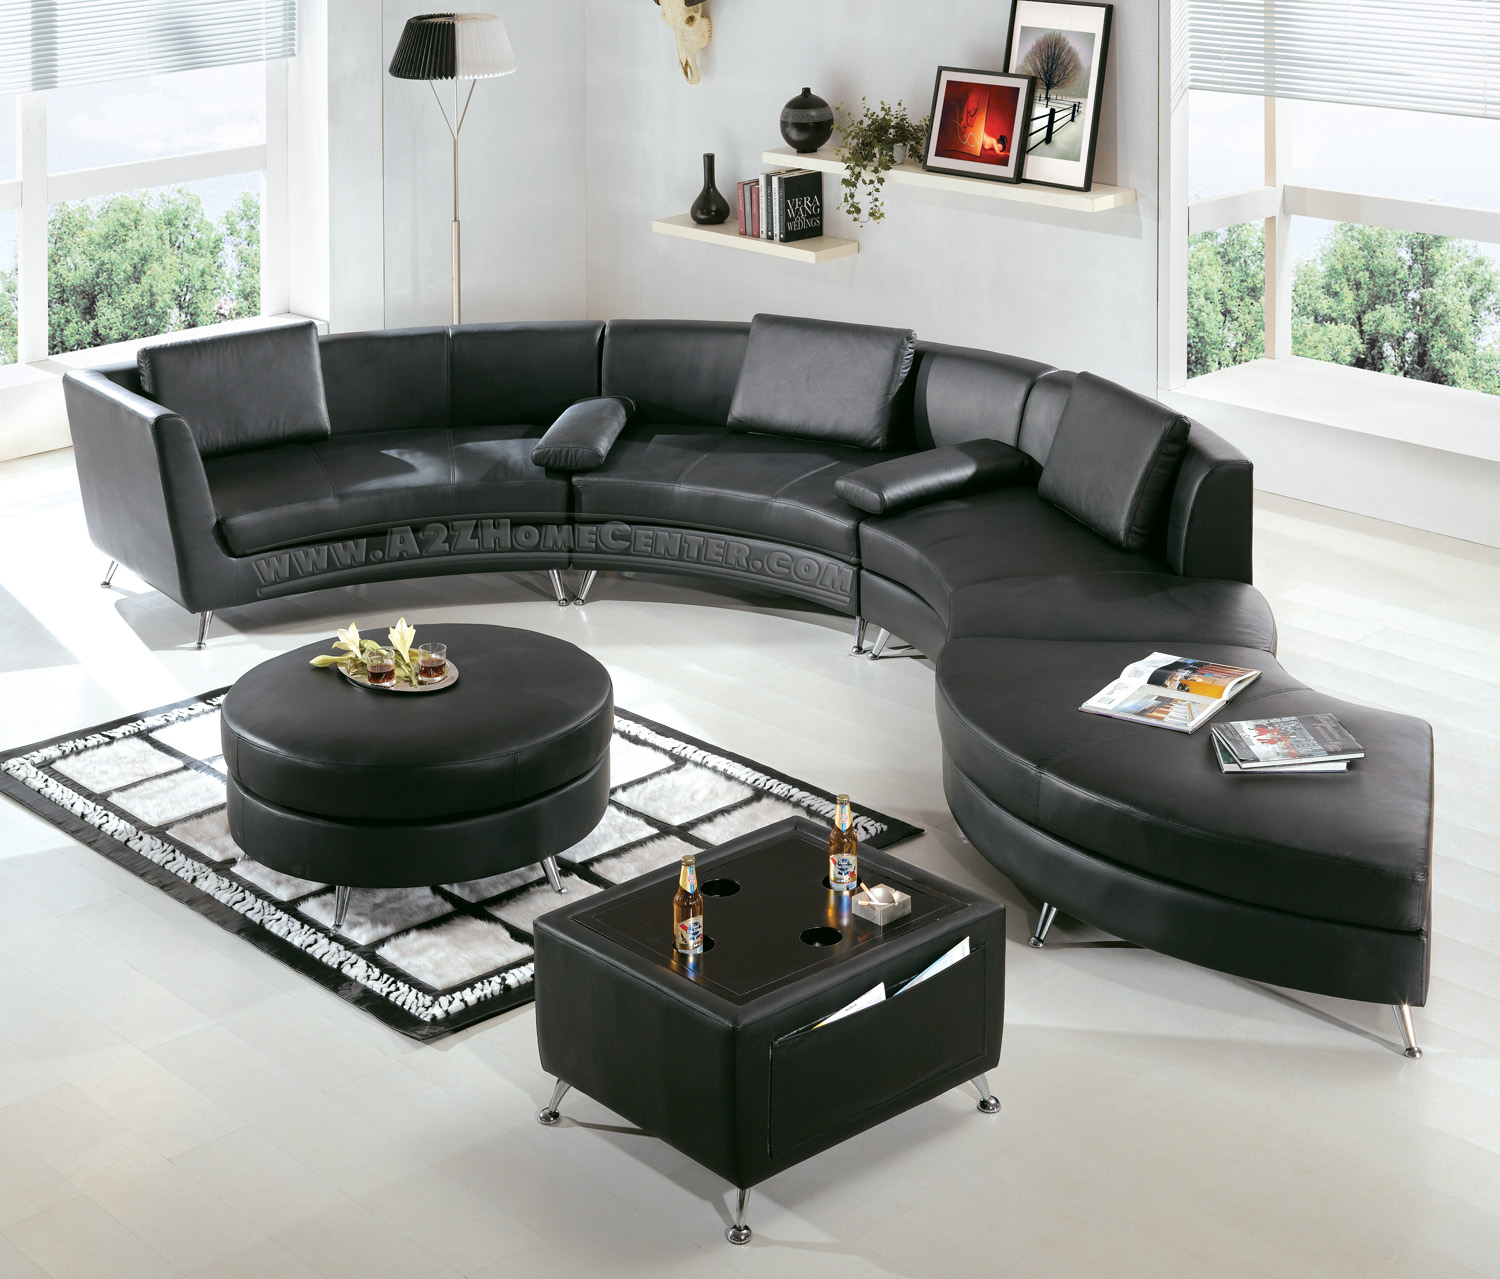 Discount Modern Sofas: Trend Home Interior Design 2011: Modern Furniture Sofa